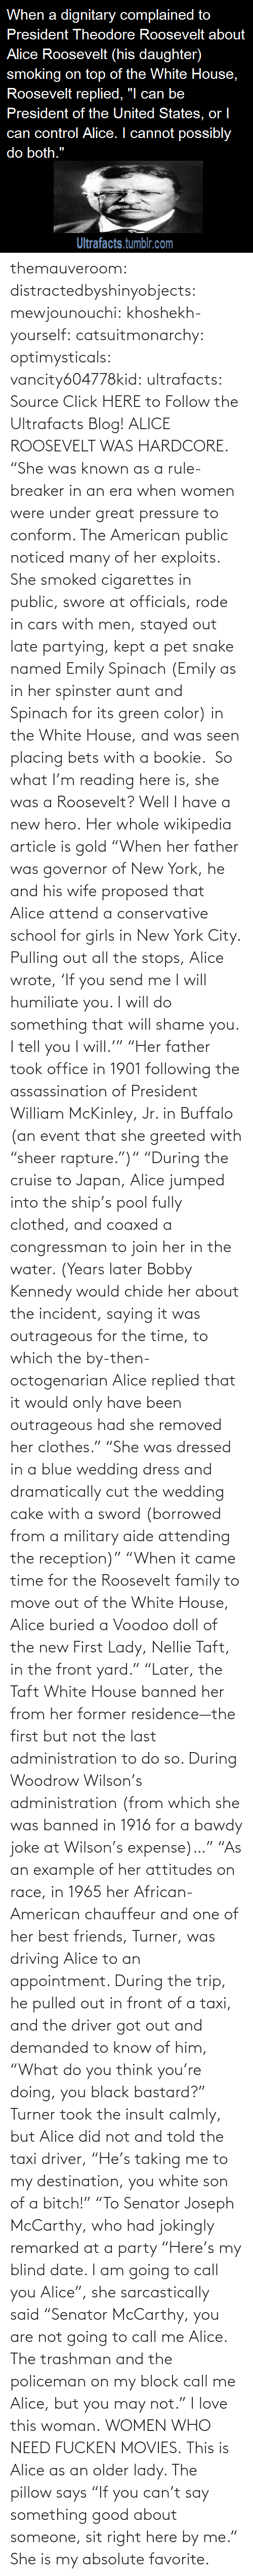 "Driving: themauveroom: distractedbyshinyobjects:  mewjounouchi:  khoshekh-yourself:  catsuitmonarchy:  optimysticals:  vancity604778kid:  ultrafacts:     Source Click HERE to Follow the Ultrafacts Blog!     ALICE ROOSEVELT WAS HARDCORE. ""She was known as a rule-breaker in an era when women were under great pressure to conform. The American public noticed many of her exploits. She smoked cigarettes in public, swore at officials, rode in cars with men, stayed out late partying, kept a pet snake named Emily Spinach (Emily as in her spinster aunt and Spinach for its green color) in the White House, and was seen placing bets with a bookie.    So what I'm reading here is, she was a Roosevelt?  Well I have a new hero.  Her whole wikipedia article is gold ""When her father was governor of New York, he and his wife proposed that Alice attend a conservative school for girls in New York City. Pulling out all the stops, Alice wrote, 'If you send me I will humiliate you. I will do something that will shame you. I tell you I will.'"" ""Her father took office in 1901 following the assassination of President William McKinley, Jr. in Buffalo (an event that she greeted with ""sheer rapture."")"" ""During the cruise to Japan, Alice jumped into the ship's pool fully clothed, and coaxed a congressman to join her in the water. (Years later Bobby Kennedy would chide her about the incident, saying it was outrageous for the time, to which the by-then-octogenarian Alice replied that it would only have been outrageous had she removed her clothes."" ""She was dressed in a blue wedding dress and dramatically cut the wedding cake with a sword (borrowed from a military aide attending the reception)"" ""When it came time for the Roosevelt family to move out of the White House, Alice buried a Voodoo doll of the new First Lady, Nellie Taft, in the front yard."" ""Later, the Taft White House banned her from her former residence—the first but not the last administration to do so. During Woodrow Wilson's administration (from which she was banned in 1916 for a bawdy joke at Wilson's expense)…"" ""As an example of her attitudes on race, in 1965 her African-American chauffeur and one of her best friends, Turner, was driving Alice to an appointment. During the trip, he pulled out in front of a taxi, and the driver got out and demanded to know of him, ""What do you think you're doing, you black bastard?"" Turner took the insult calmly, but Alice did not and told the taxi driver, ""He's taking me to my destination, you white son of a bitch!"" ""To Senator Joseph McCarthy, who had jokingly remarked at a party ""Here's my blind date. I am going to call you Alice"", she sarcastically said ""Senator McCarthy, you are not going to call me Alice. The trashman and the policeman on my block call me Alice, but you may not.""  I love this woman.  WOMEN WHO NEED FUCKEN MOVIES.   This is Alice as an older lady. The pillow says ""If you can't say something good about someone, sit right here by me.""  She is my absolute favorite."